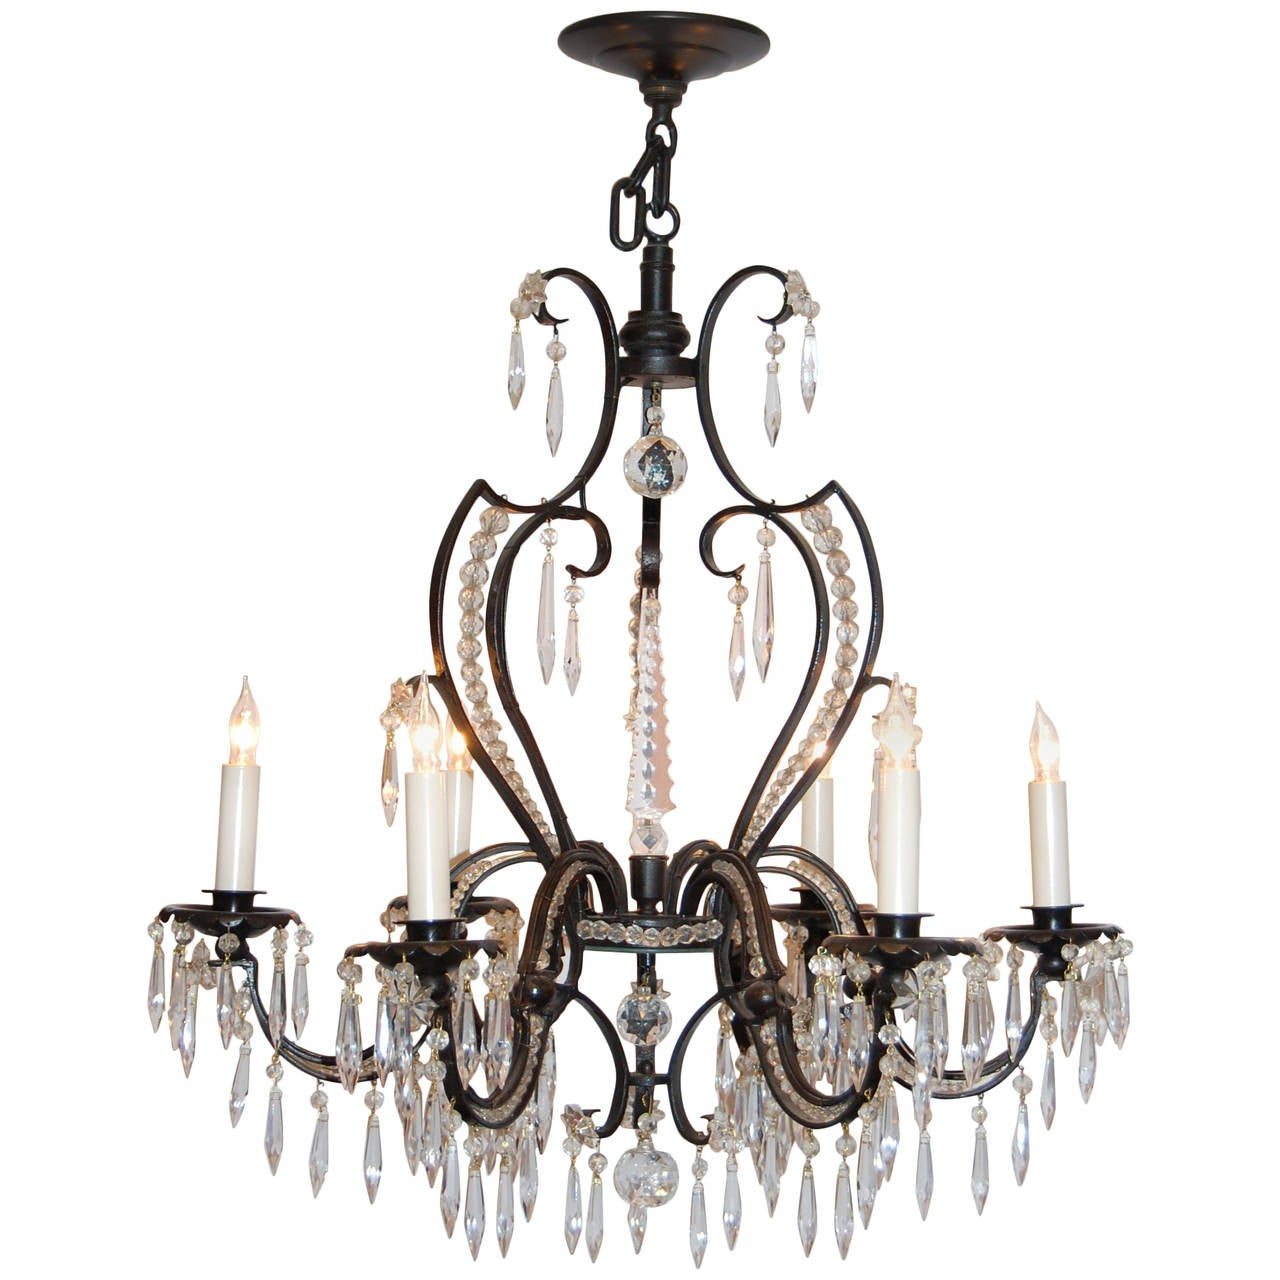 Iron and crystal six light chandelier circa 1920s 1930s for sale at 1stdibs - Circa lighting chandeliers ...